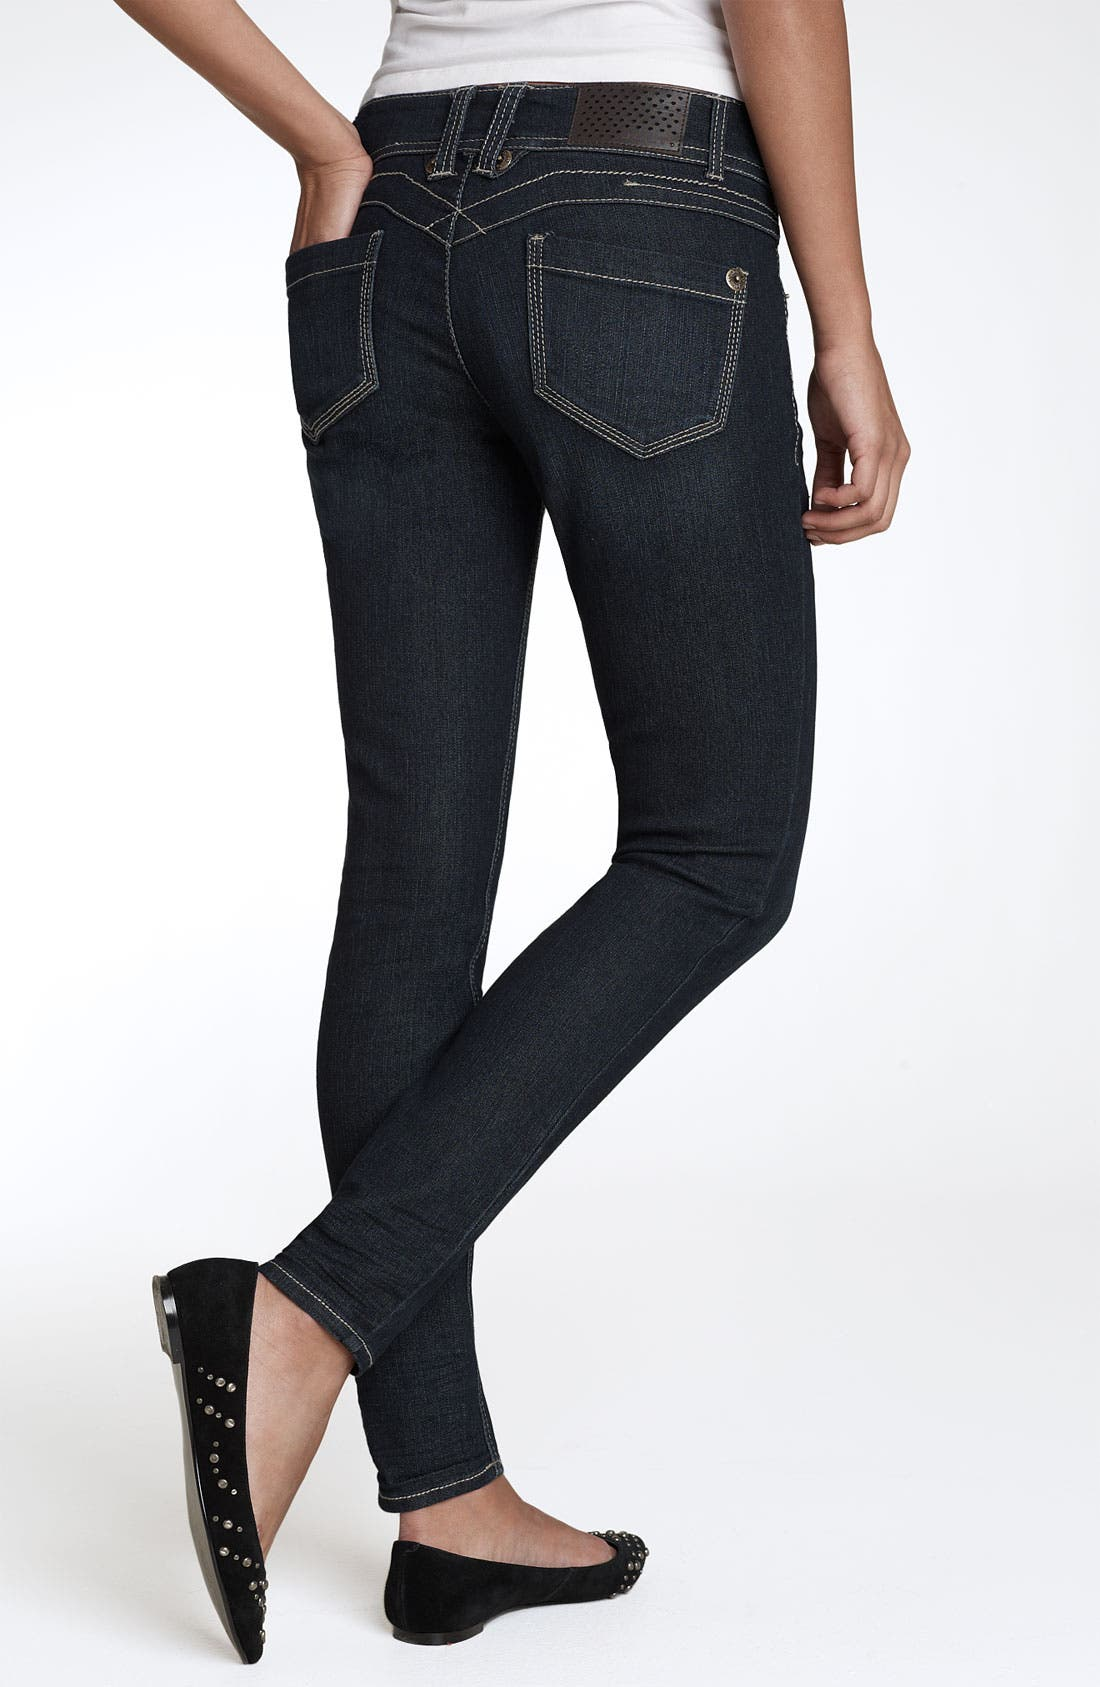 Alternate Image 1 Selected - Jolt 'Pick Me Up' Stretch Denim Leggings (Denim) (Juniors)